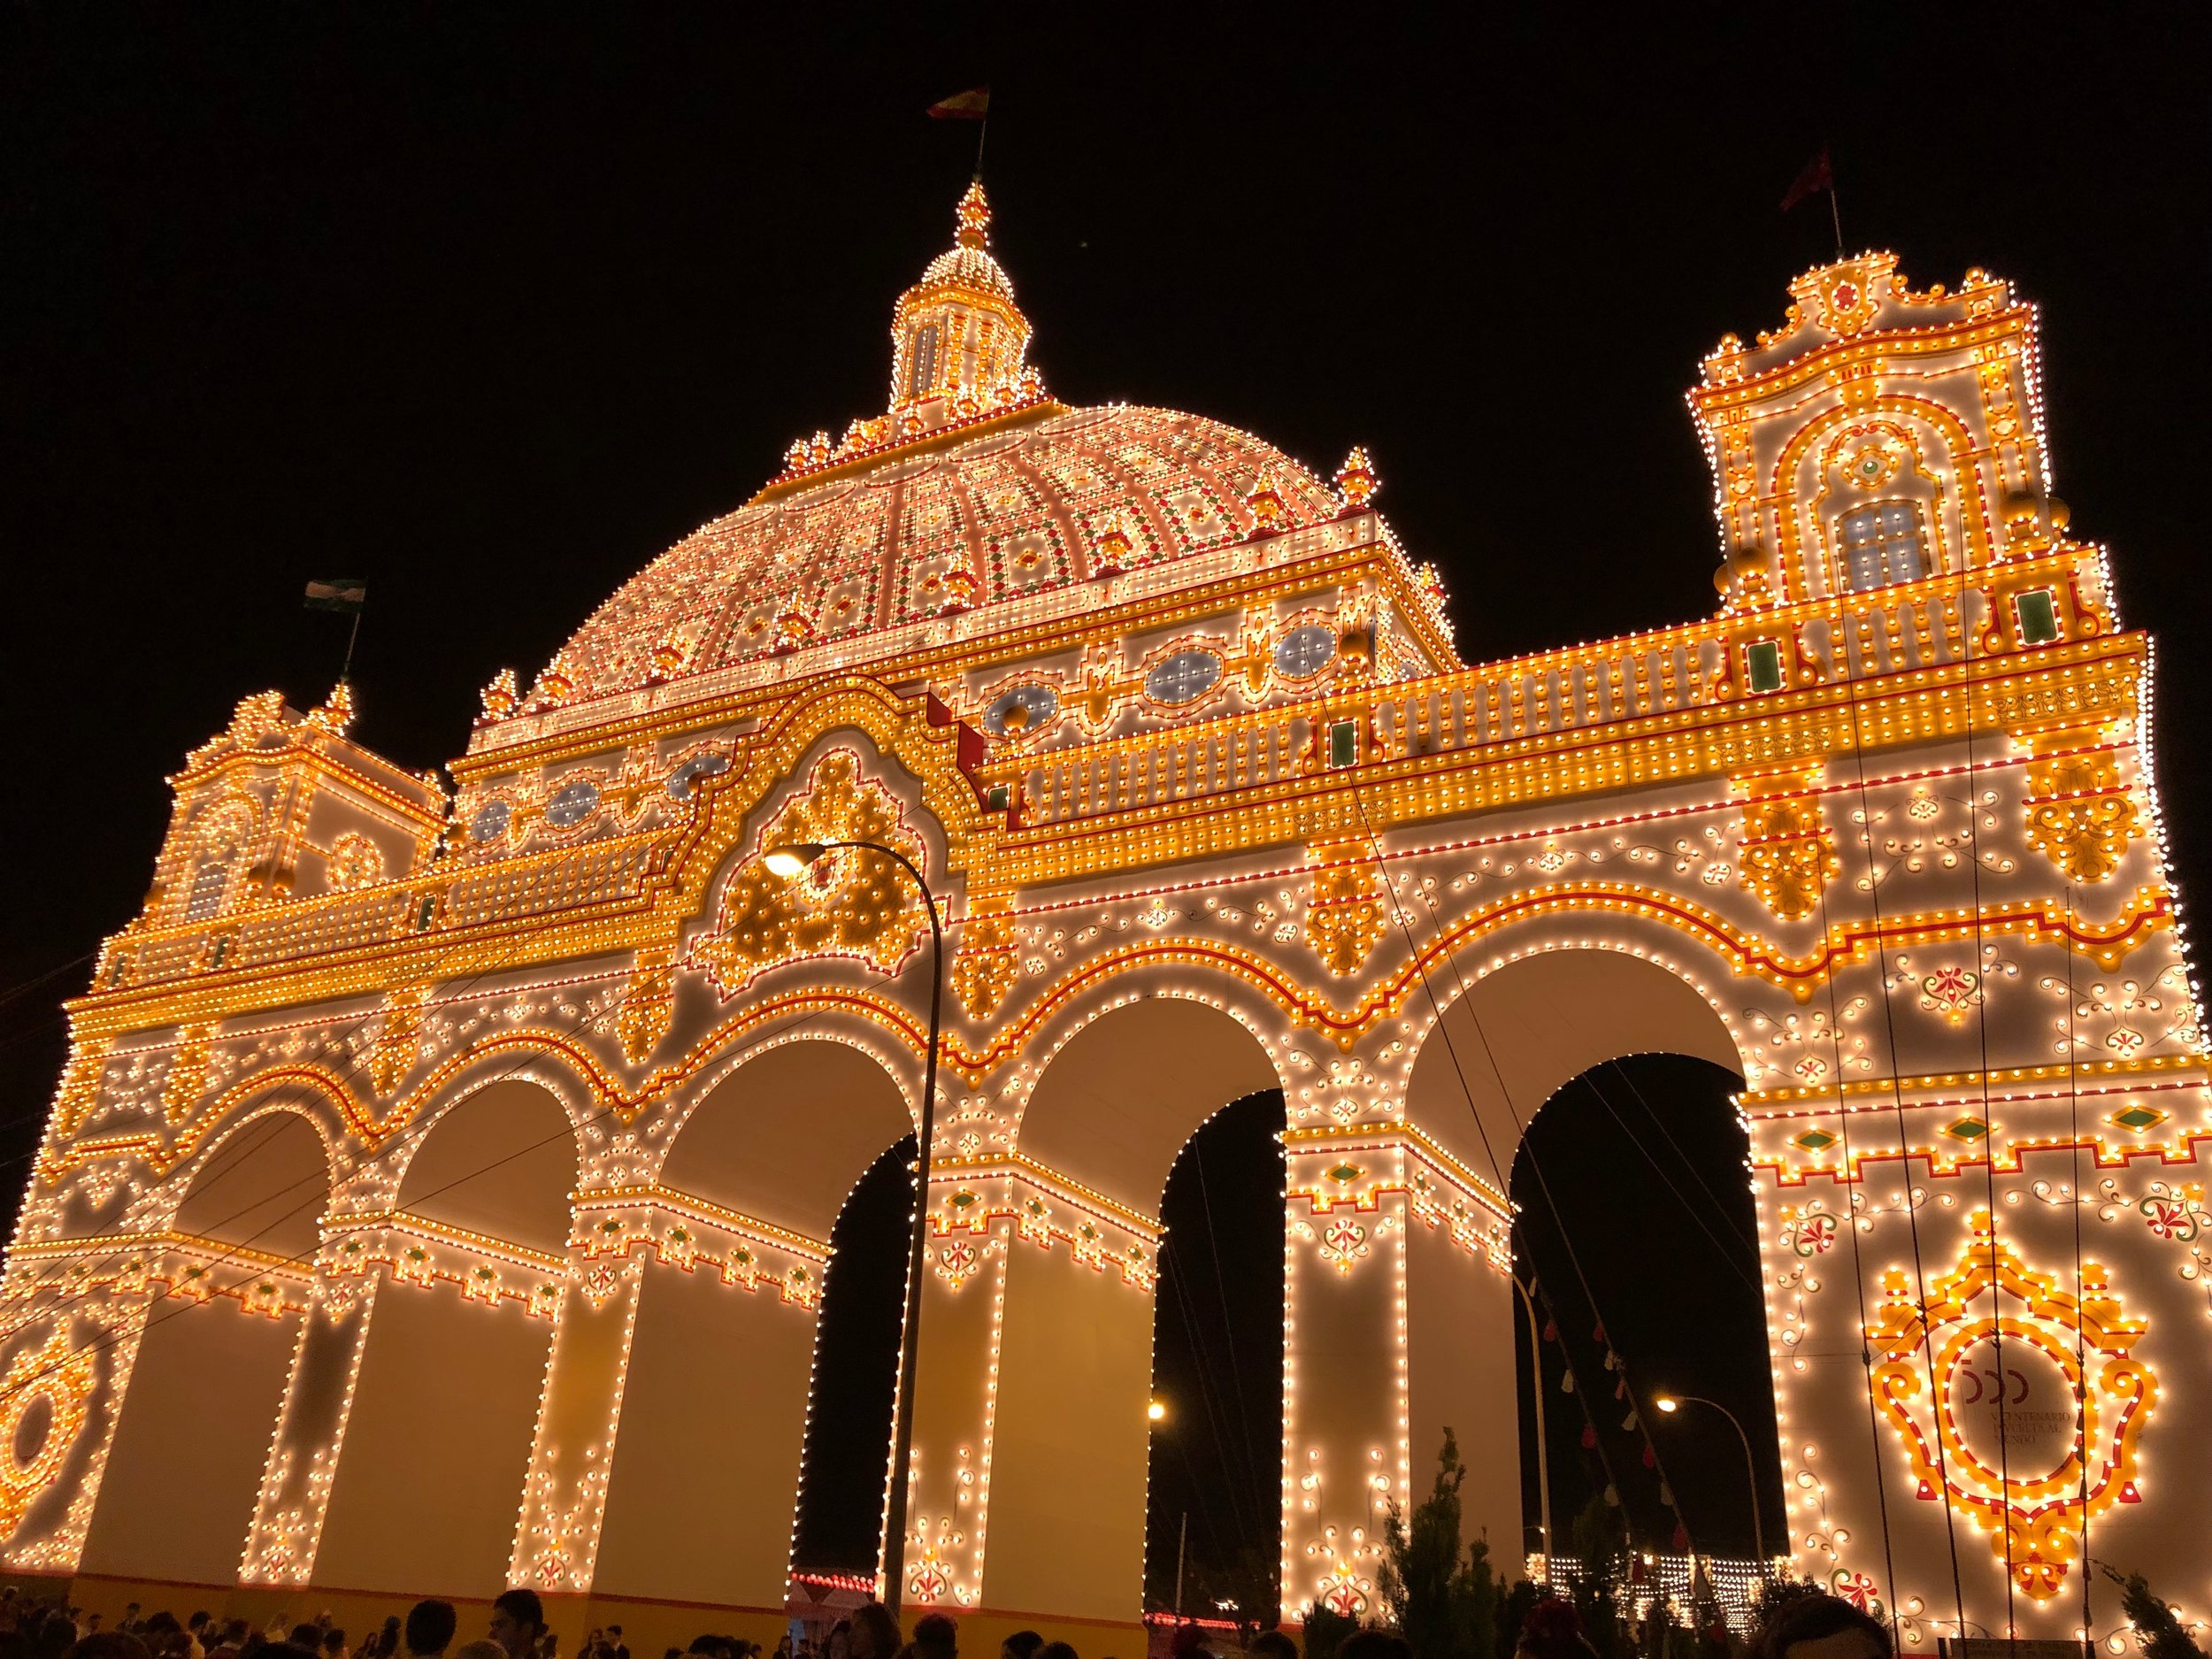 And here is the Portada, the main gate of the fairgrounds, magnificently lit up at night.